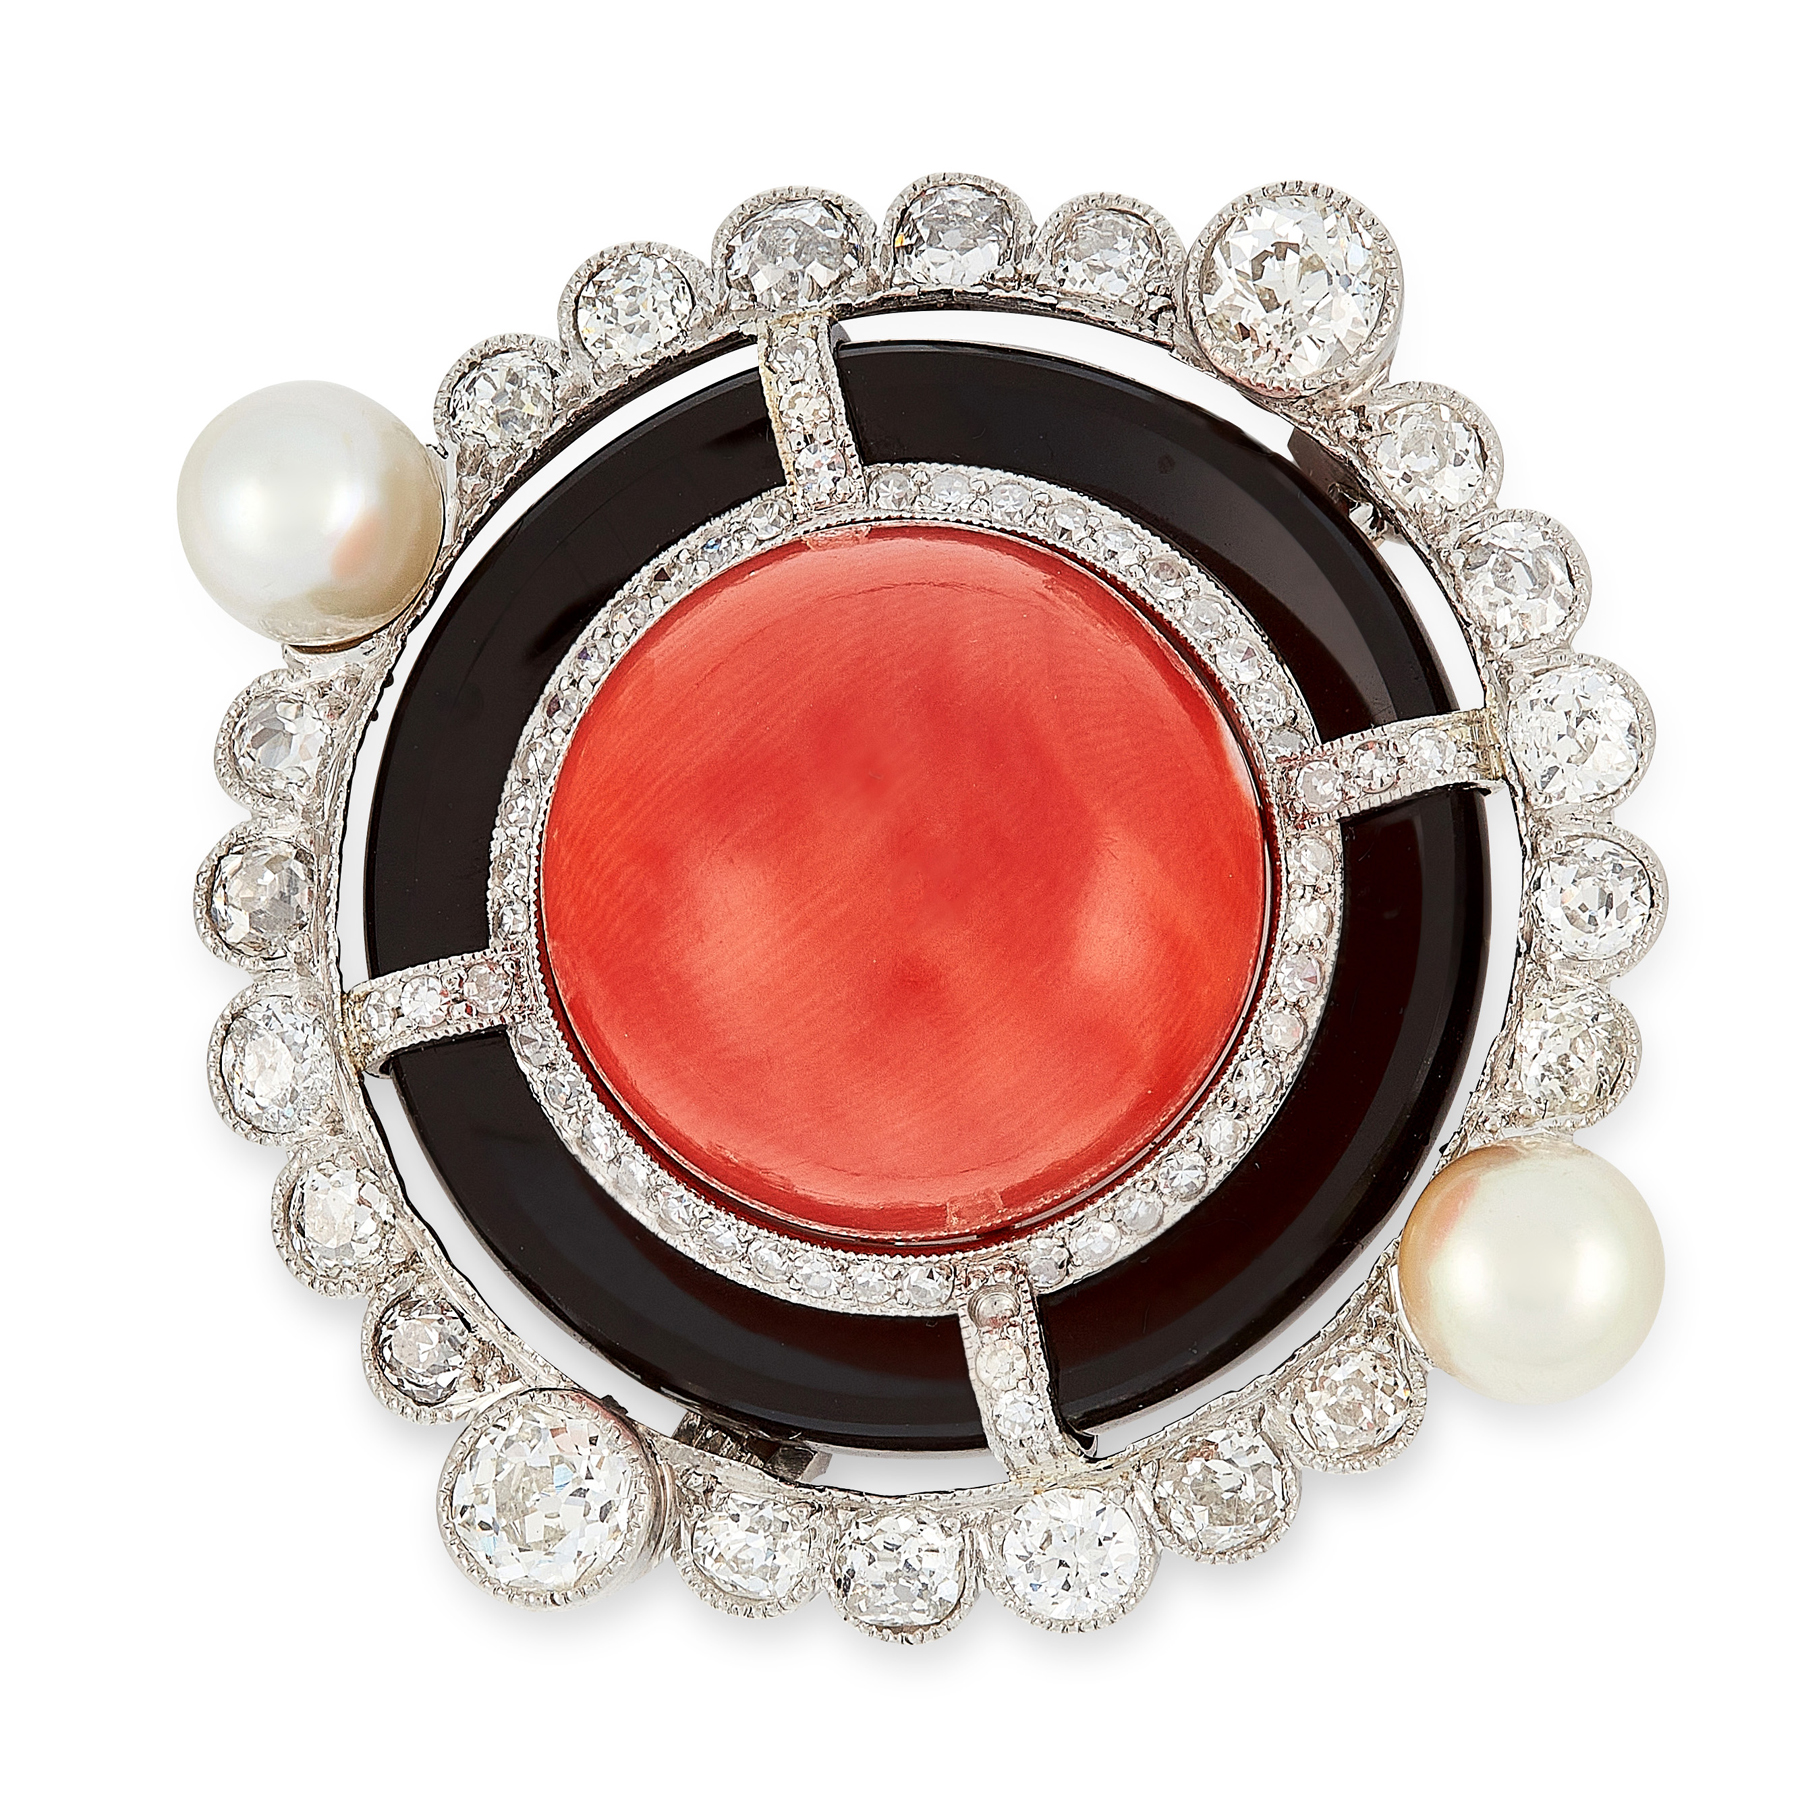 AN ART DECO CORAL, ONYX, PEARL AND DIAMOND BROOCH, EARLY 20TH CENTURY in platinum, set with a